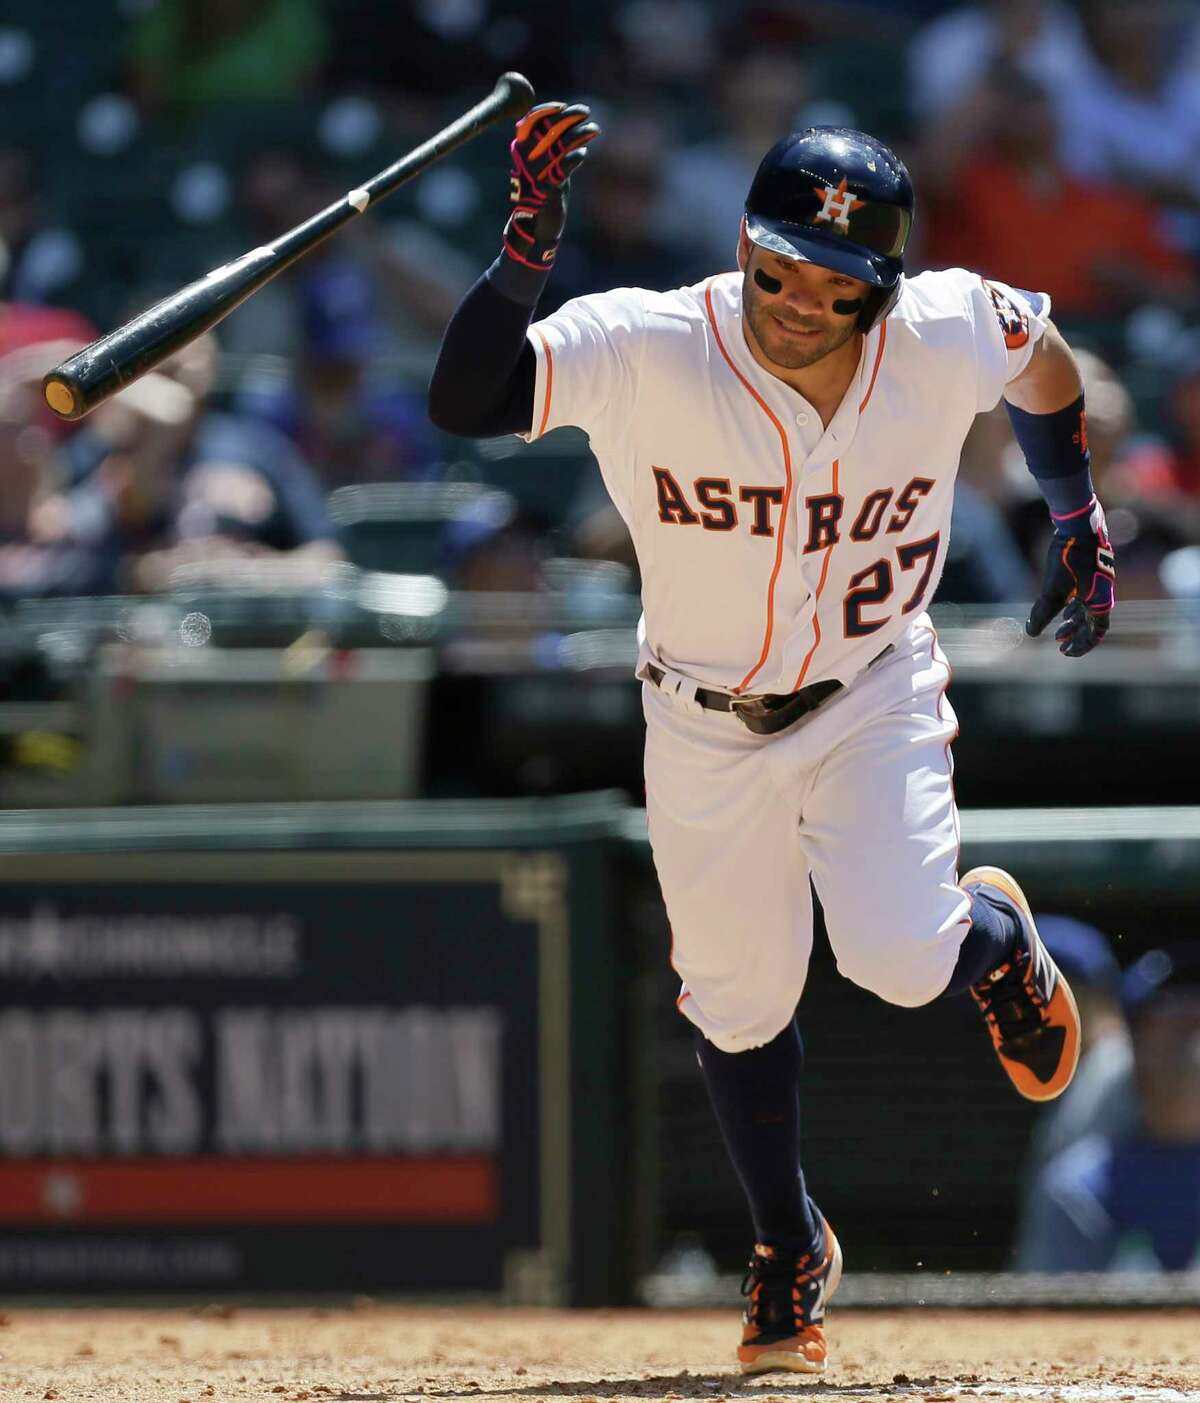 The Astros' Jose Altuve was not a fan of pop culture on this fifth-inning at-bat, which ended in a catch by Rangers first baseman Mike Napoli.